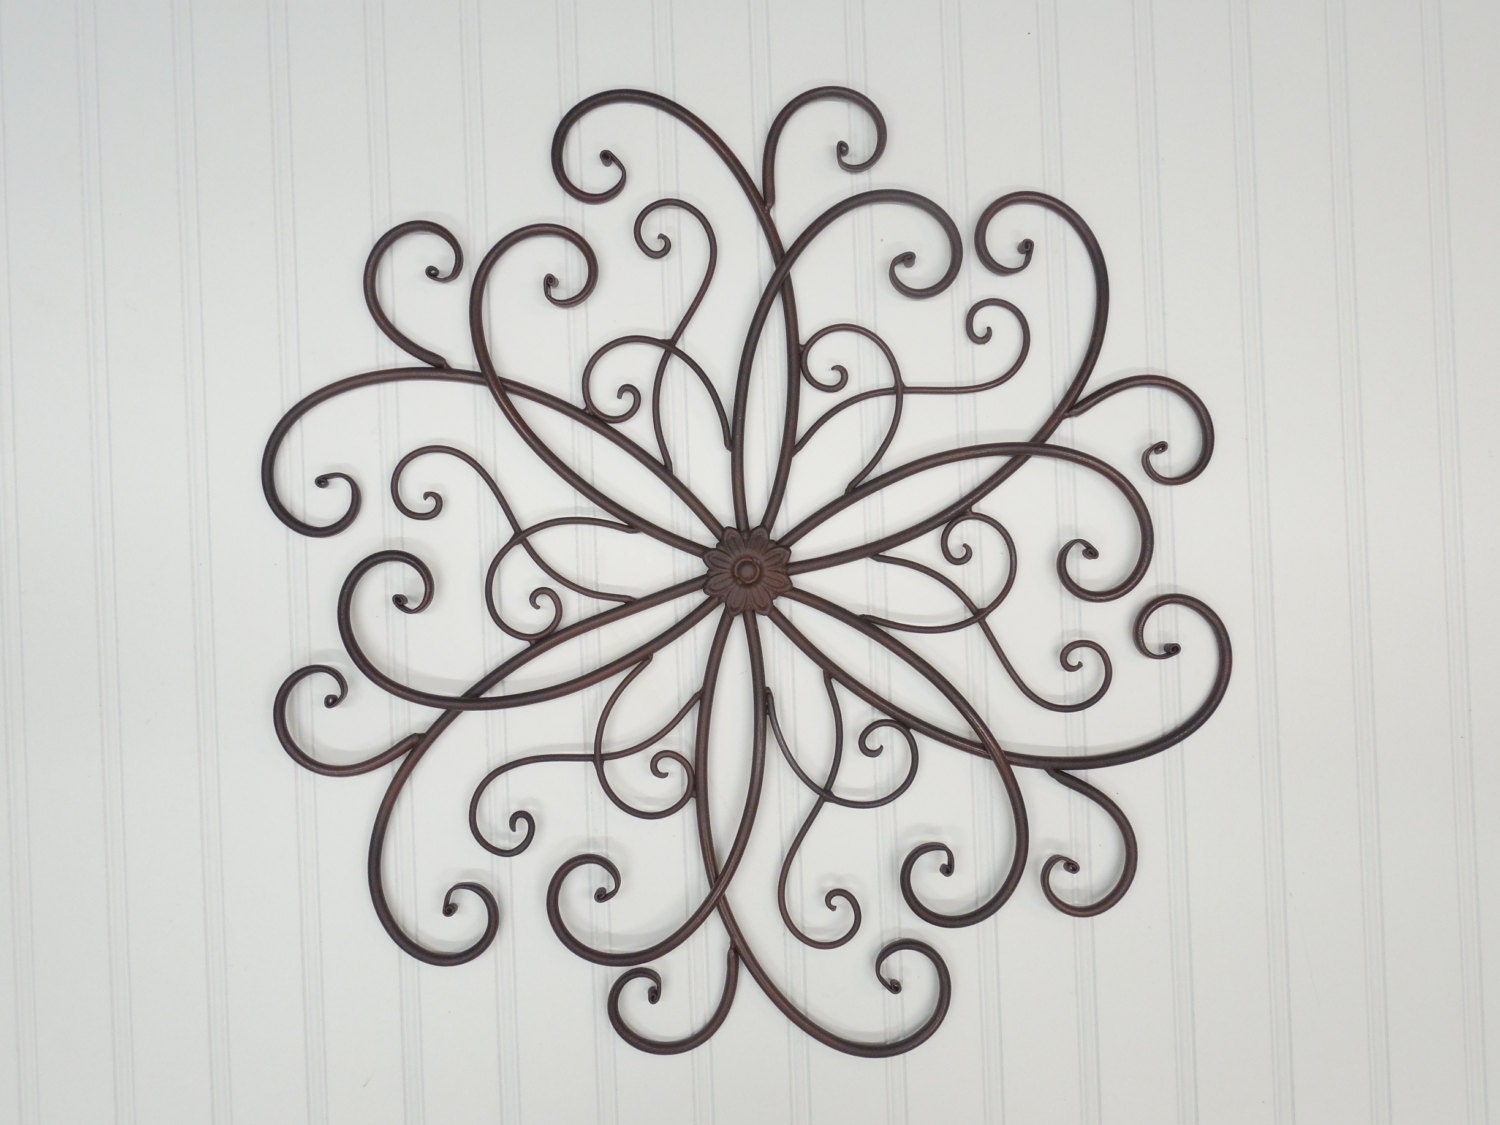 White Iron Wall Decor Metal Wall Scrollwall Decorbohemianmetal Wall Decorrustic